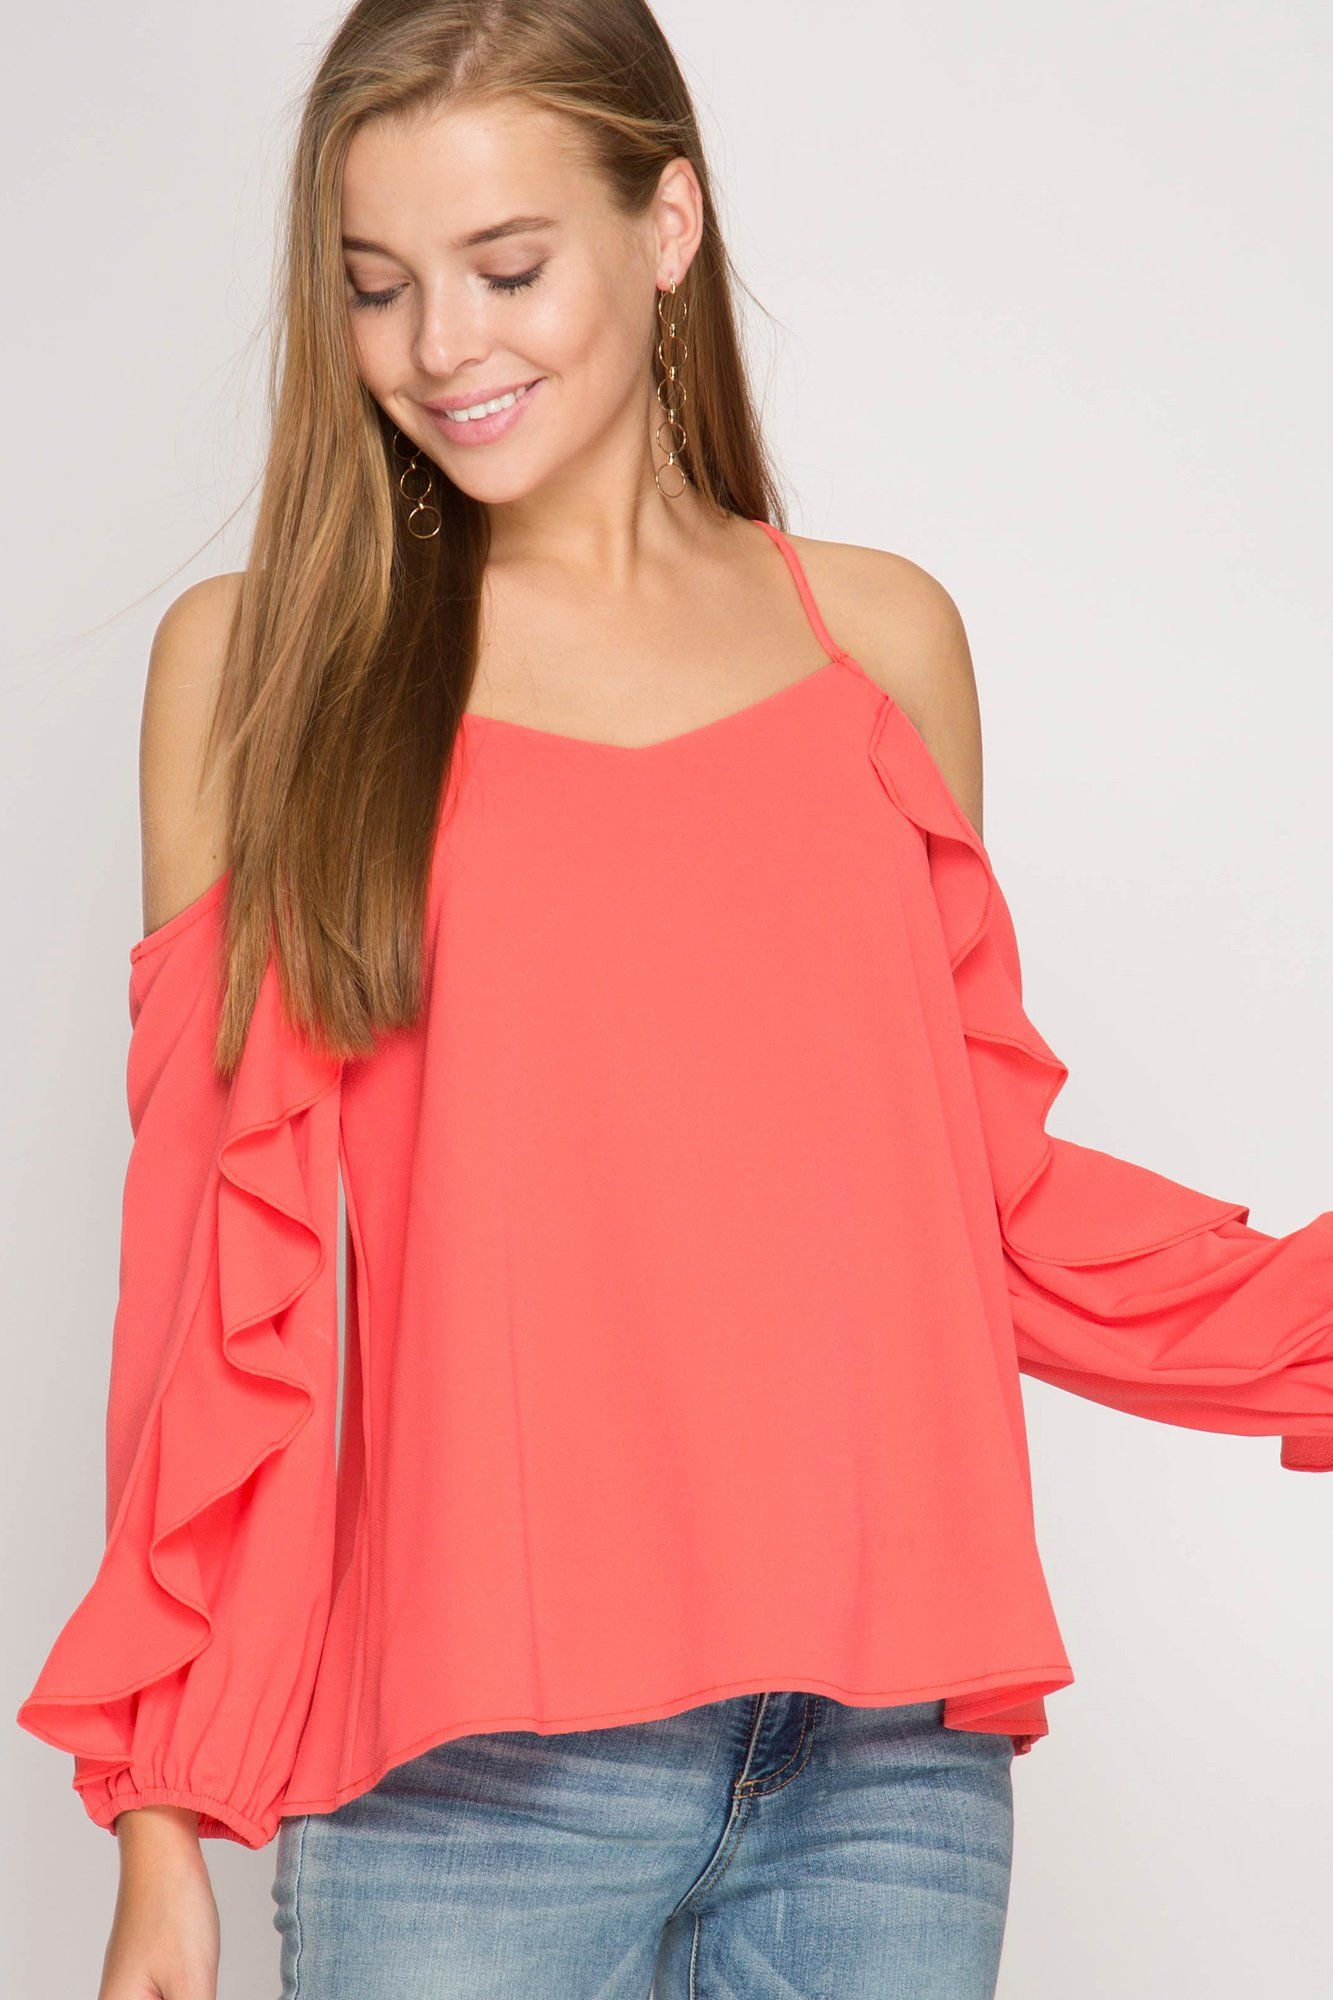 Long Sleeve Cold Shoulder Top with Ruffled Sleeve in Coral